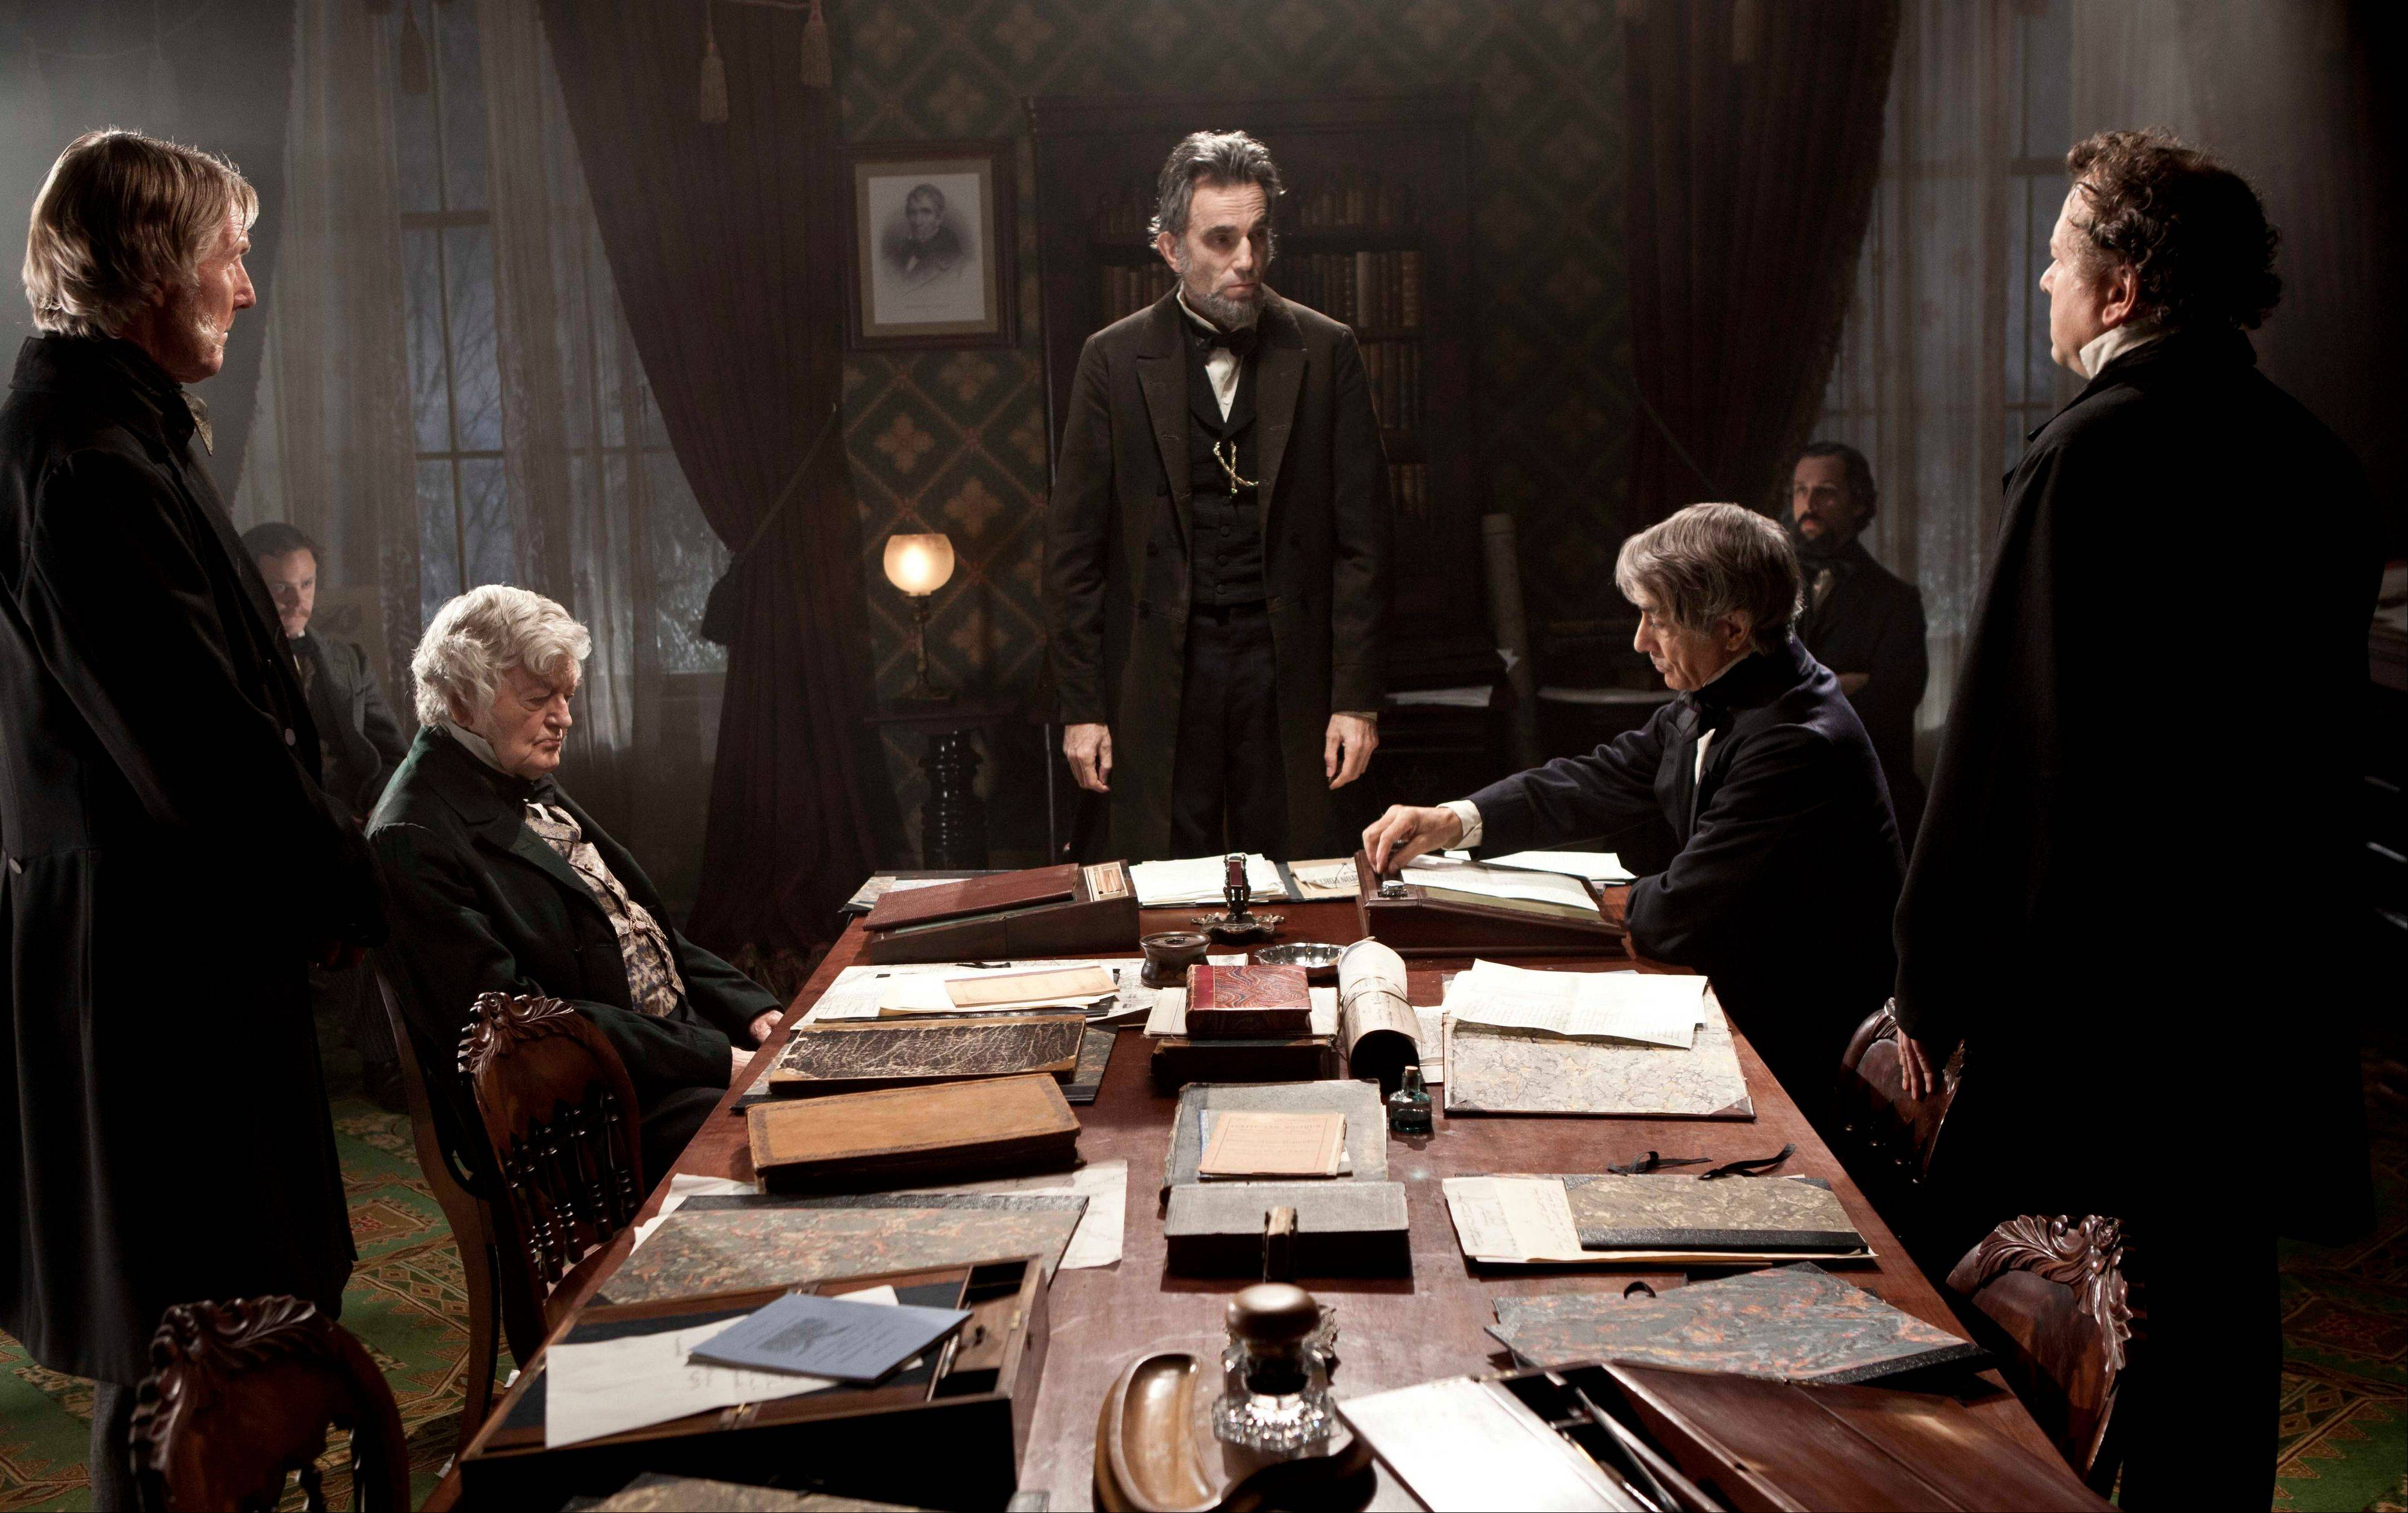 This undated publicity photo provided by DreamWorks and Twentieth Century Fox shows Daniel Day-Lewis, center, as Abraham Lincoln in a scene from the film �Lincoln.� The film was nominated Thursday, Jan. 10, 2013 for 12 Academy Awards, including best picture, director for Steven Spielberg and acting honors for Daniel Day-Lewis, Sally Field and Tommy Lee Jones.